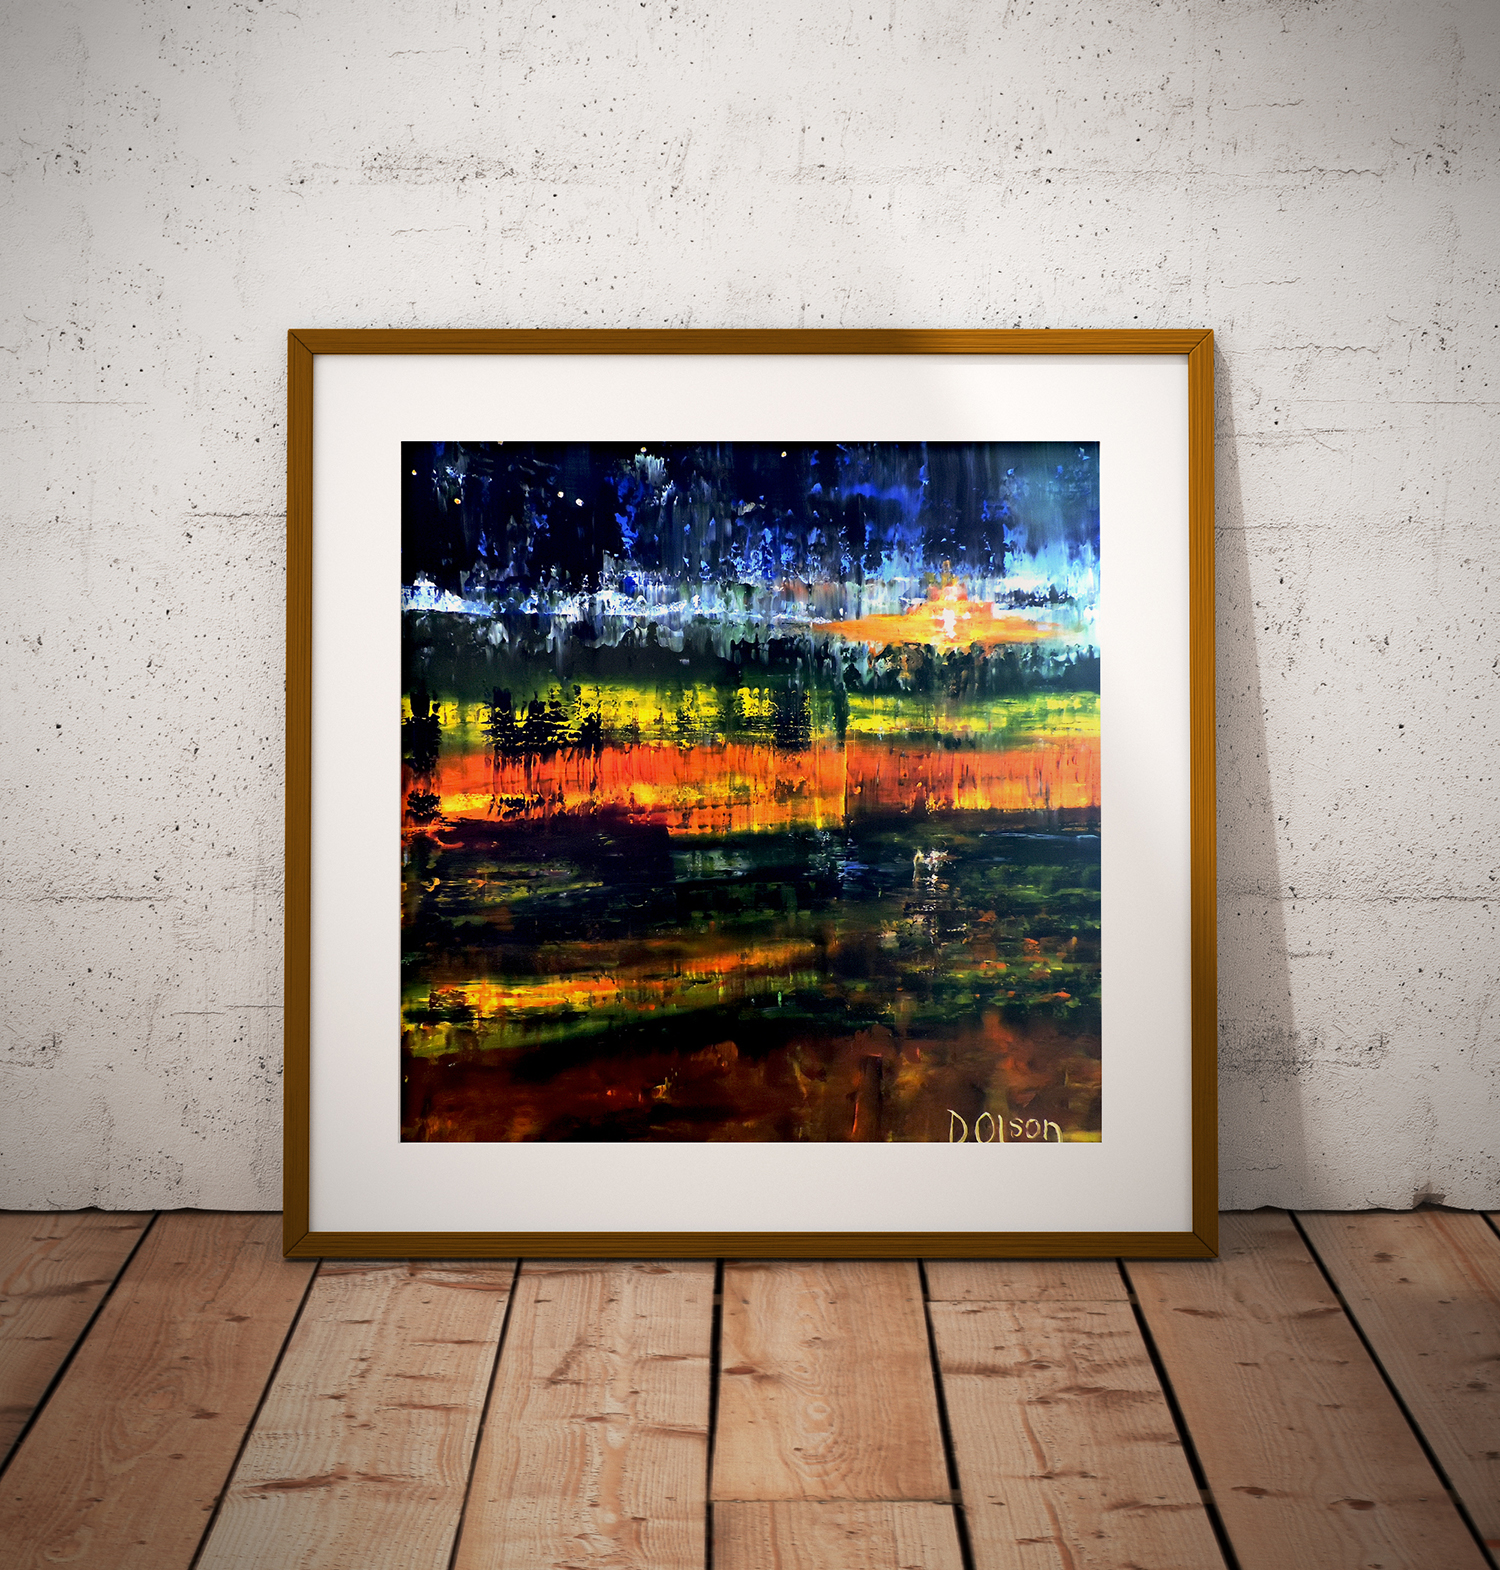 Impressionistic painting framed and sitting on floor.